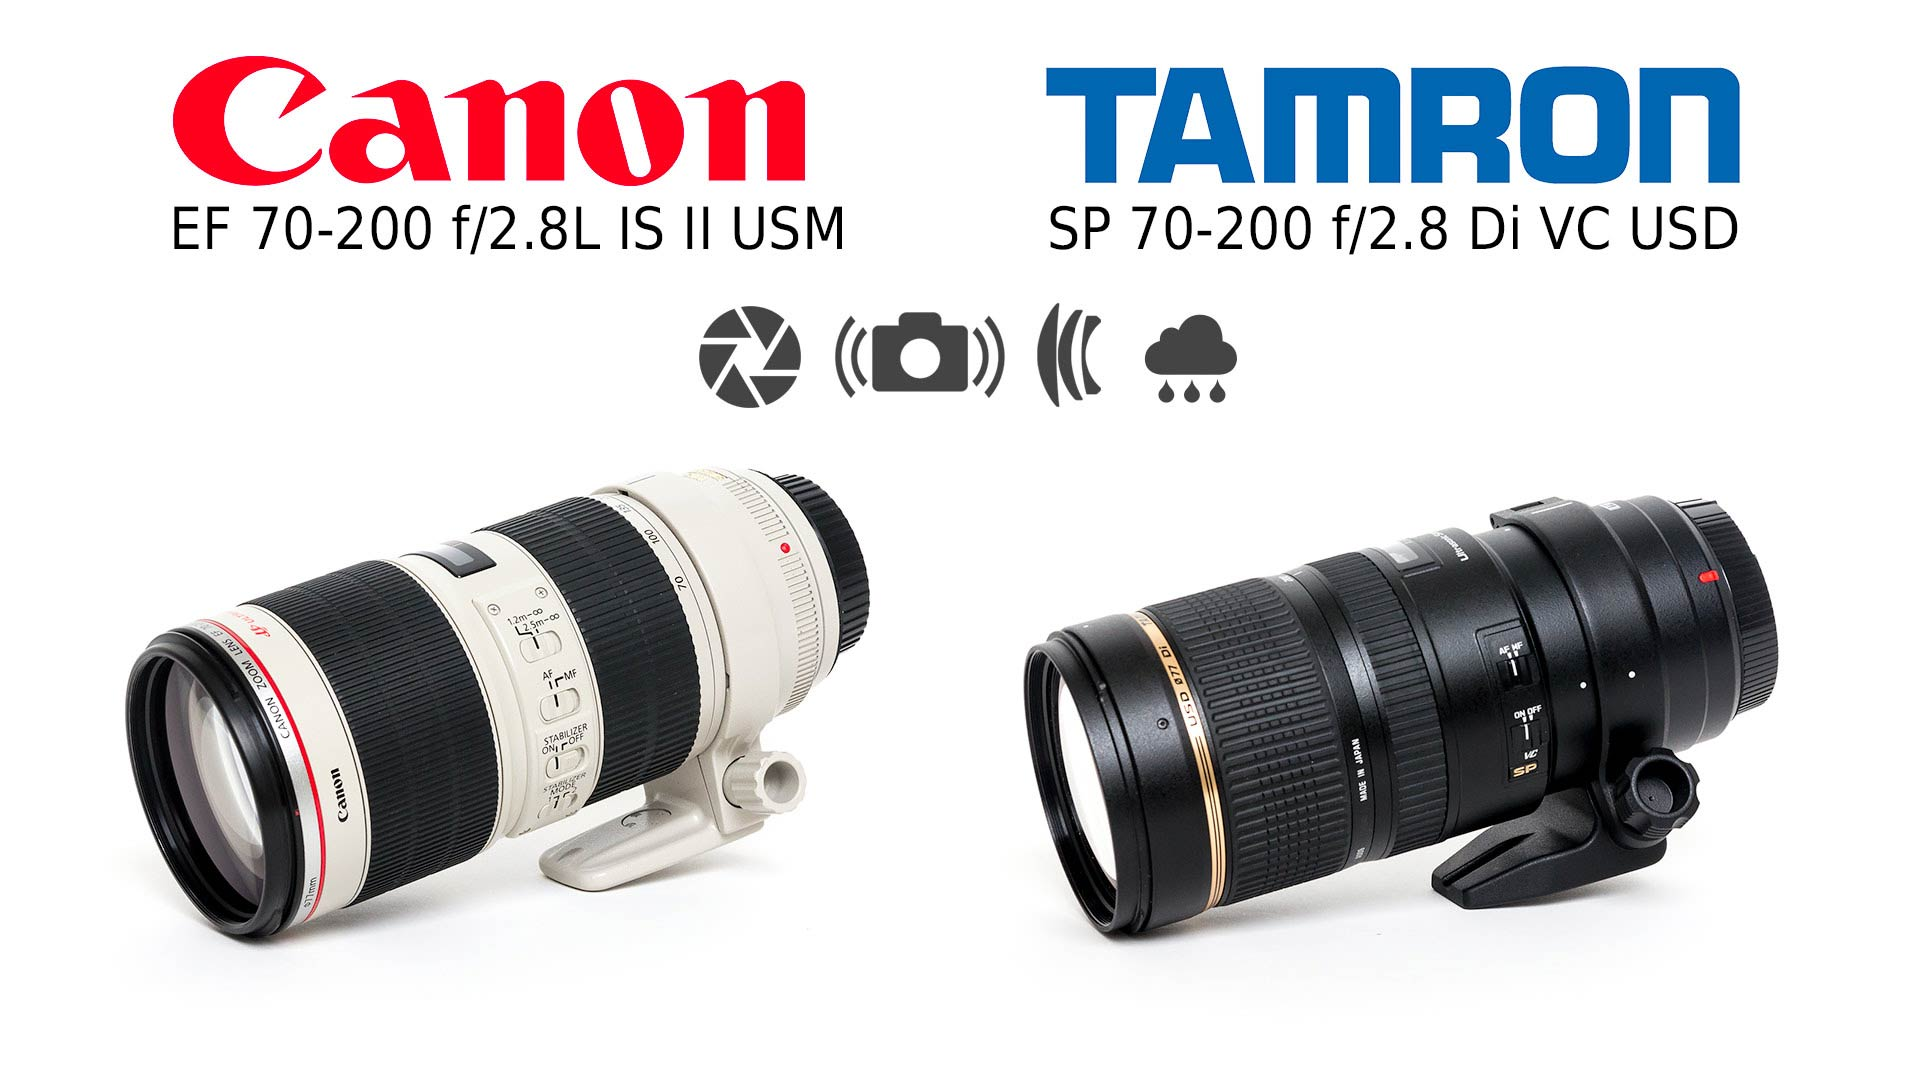 Lens Comparison: Tamron SP 70-200 f/2.8 Di VC USD vs Canon EF 70-200 f/2.8L (PART 1)